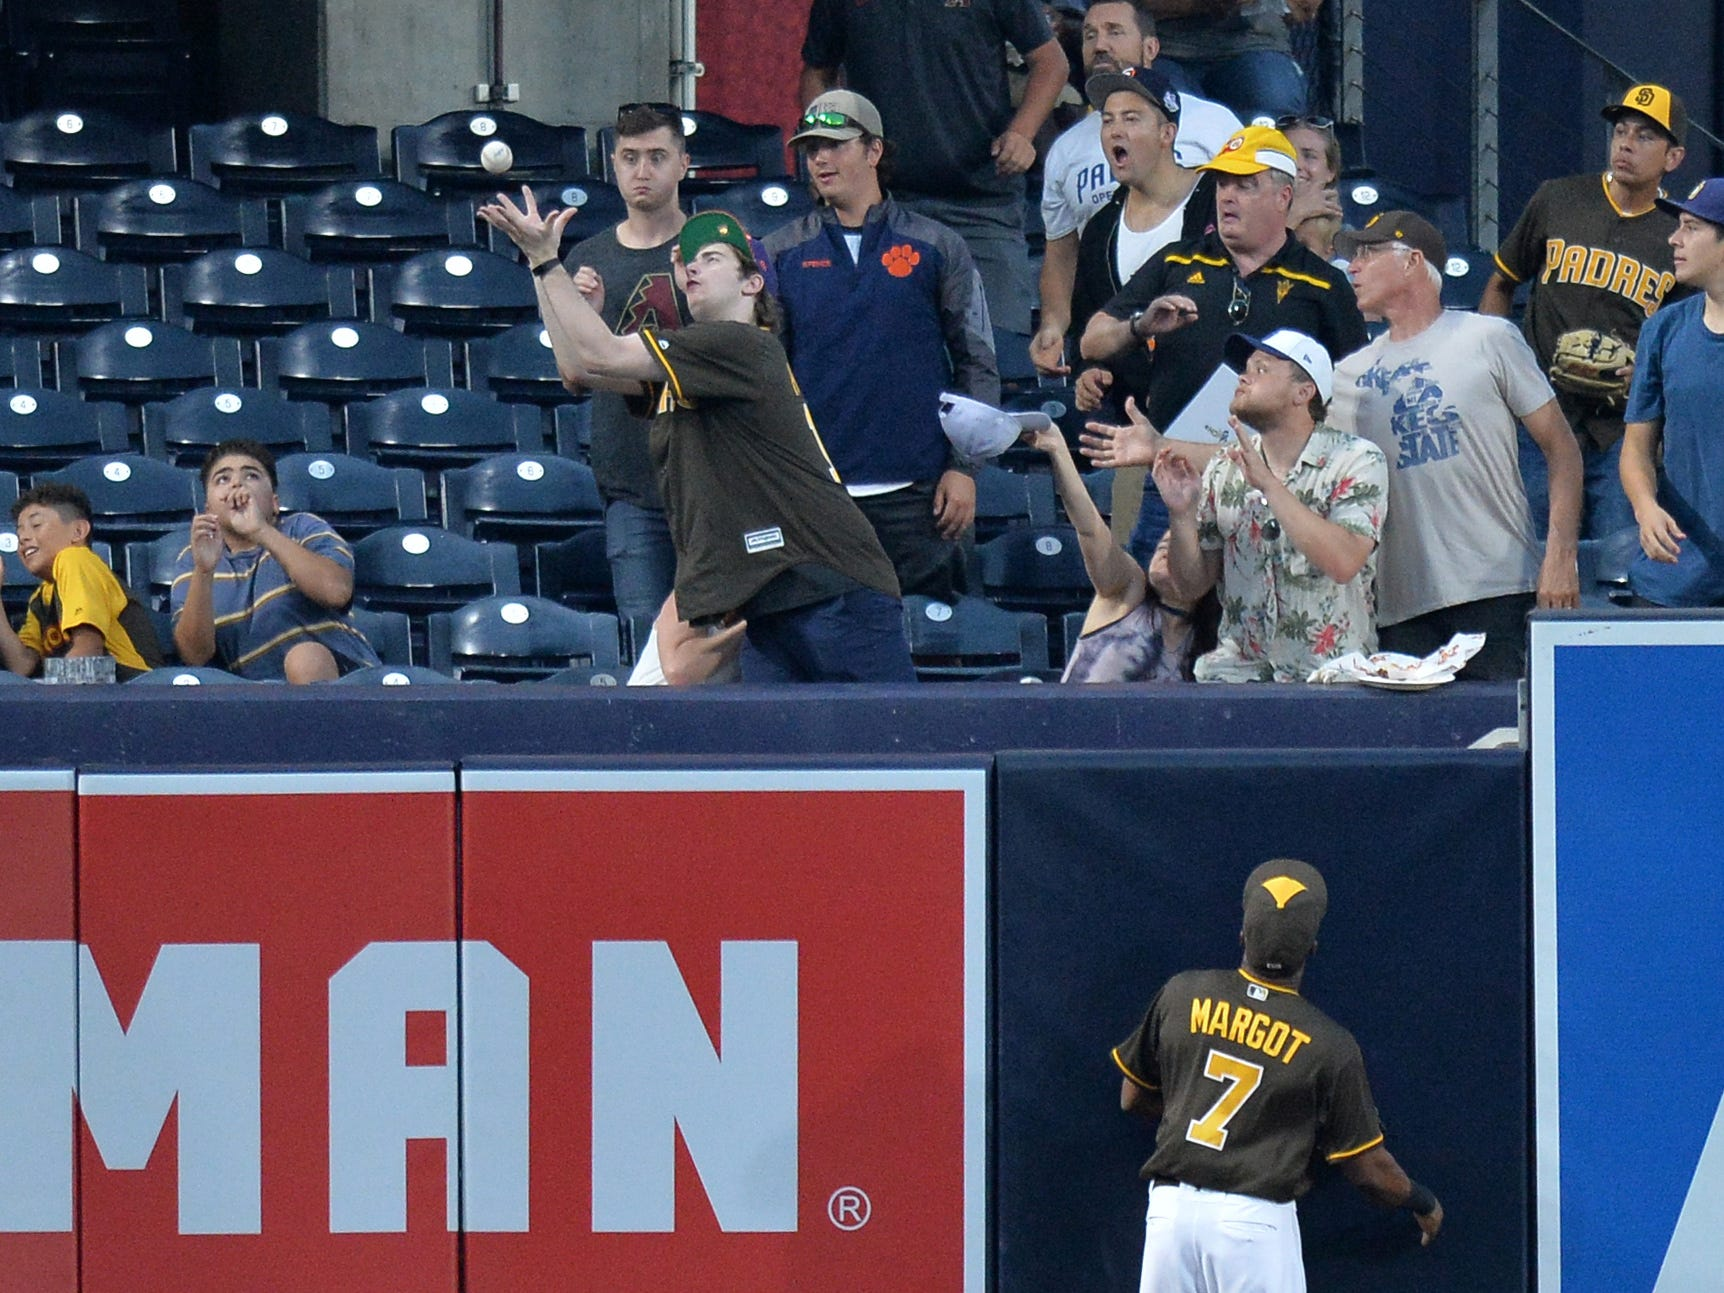 Aug 17, 2018: A San Diego Padres fan tries to catch a two run home run by Arizona Diamondbacks first baseman Paul Goldschmidt (not pictured) during the first inning as center fielder Manuel Margot (7) looks on at Petco Park.